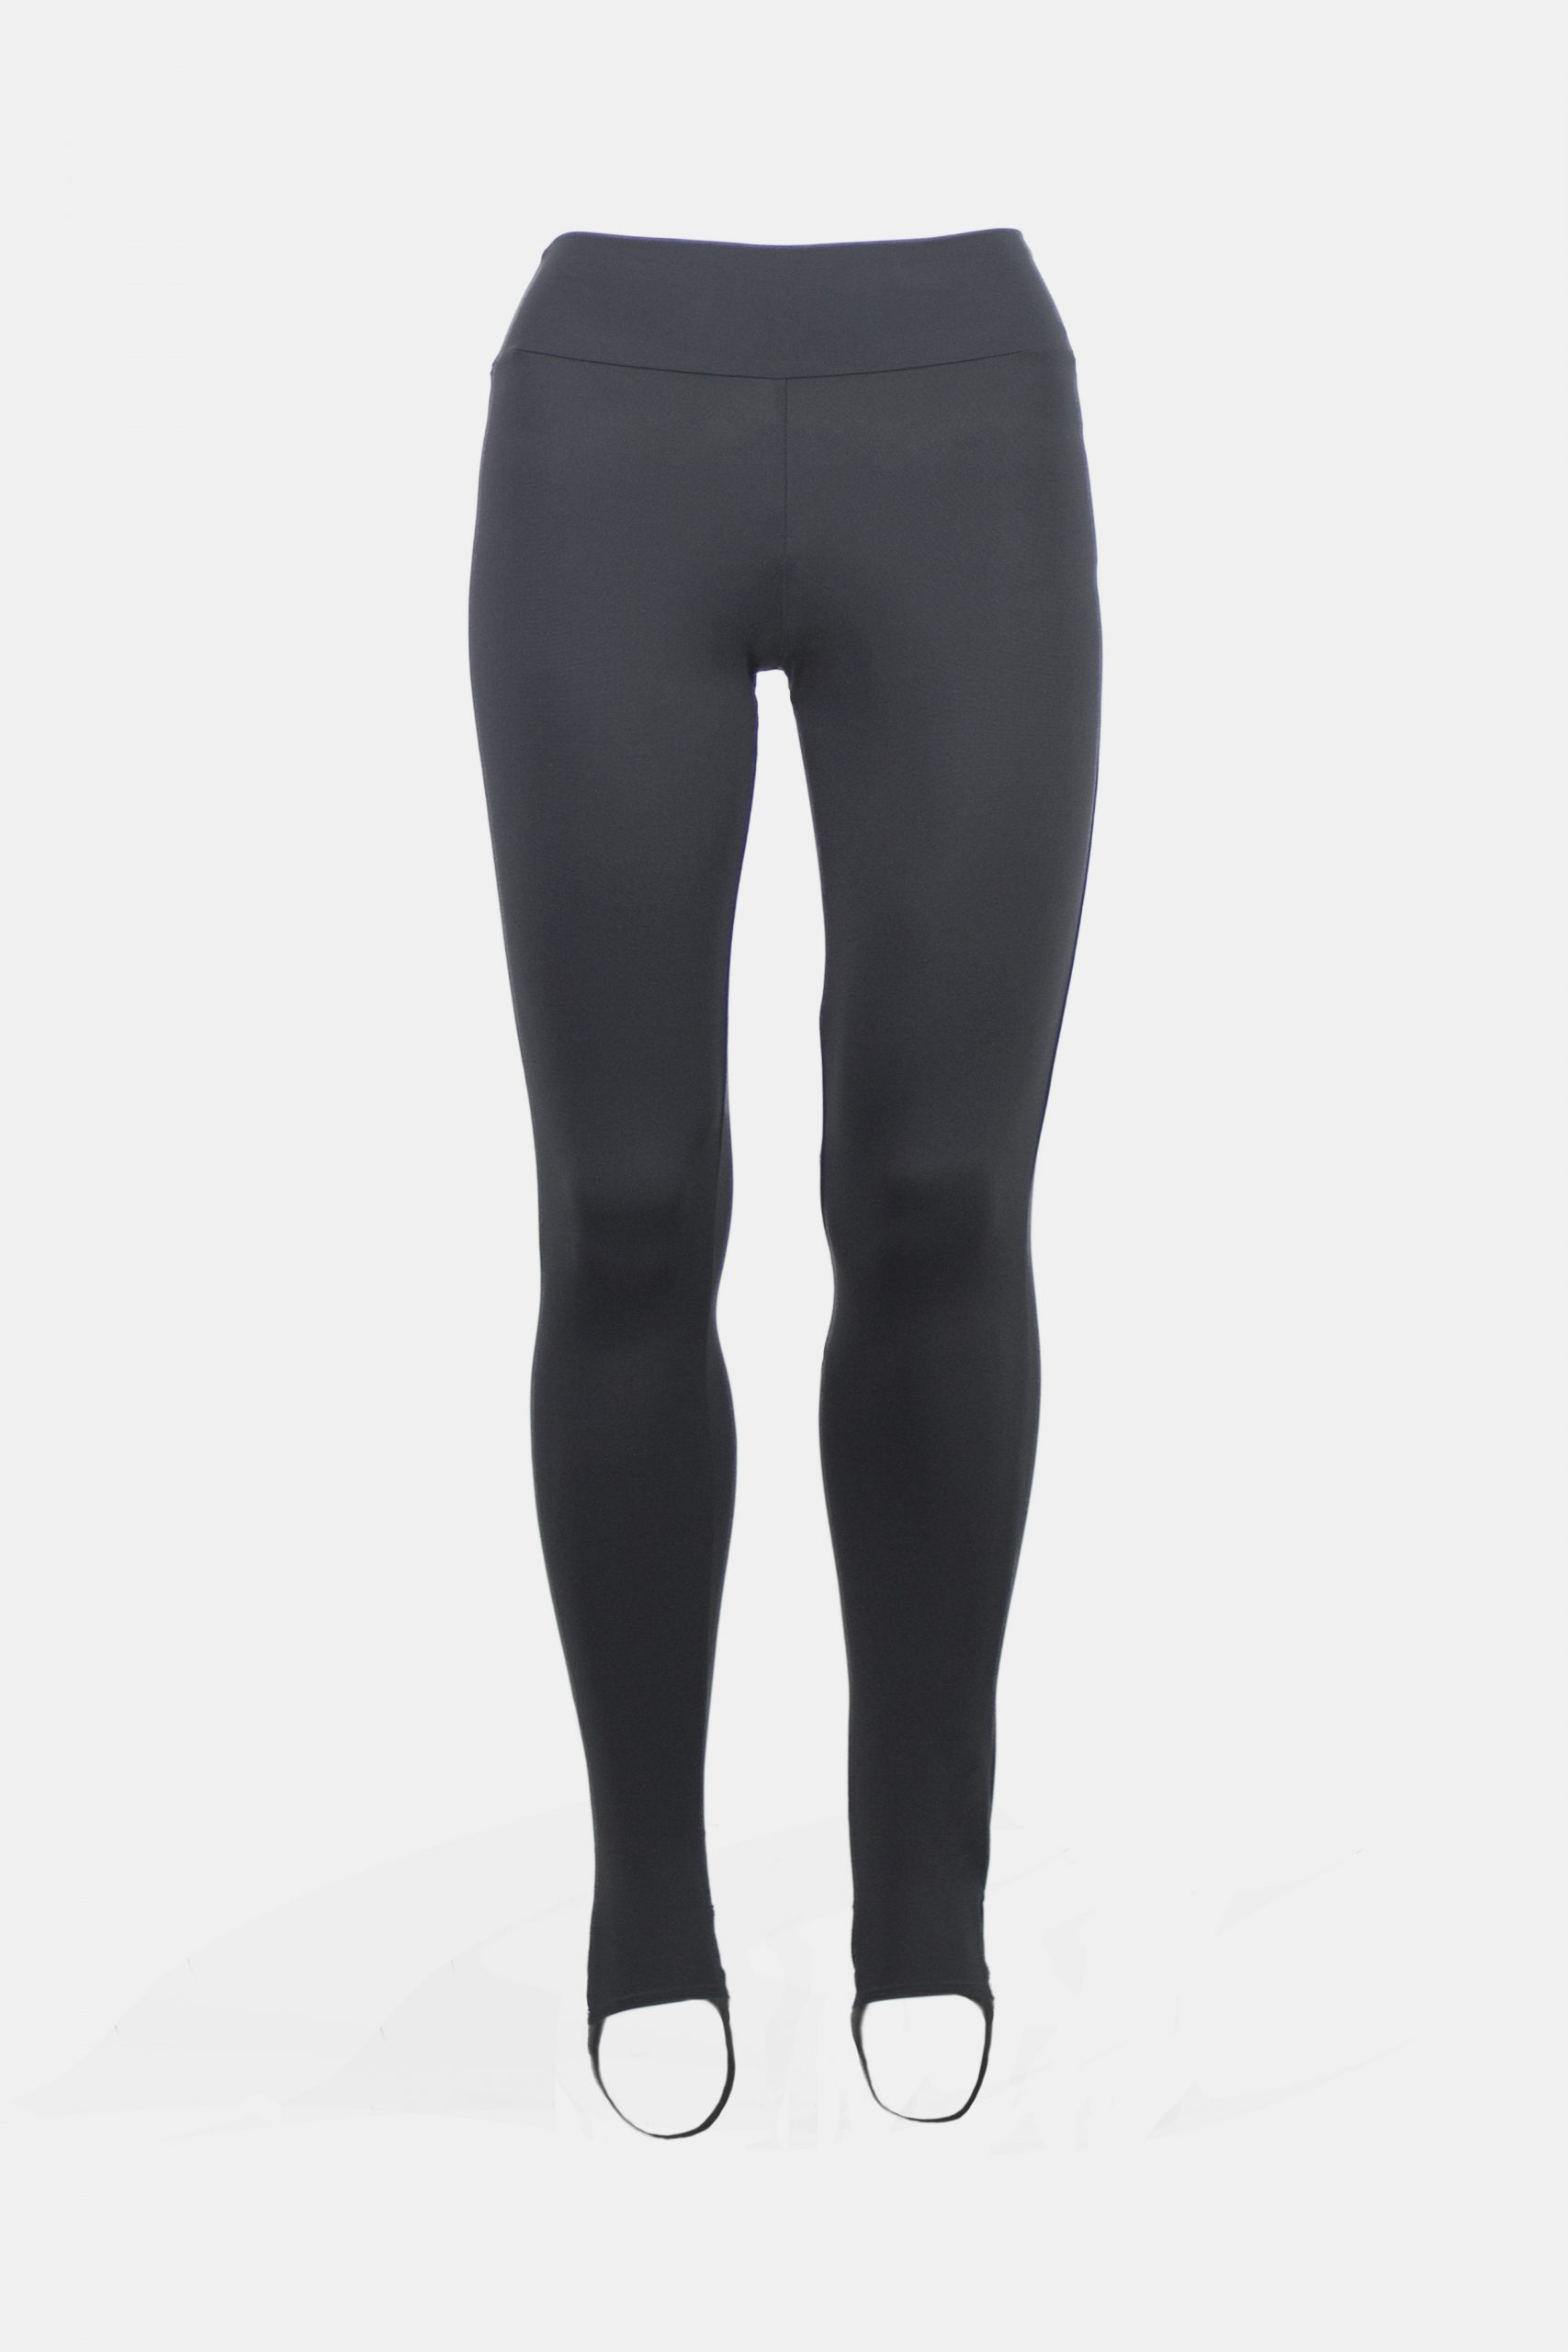 Ballet Legging Double Stirrup | Gaynor Minden | BALLETONIST